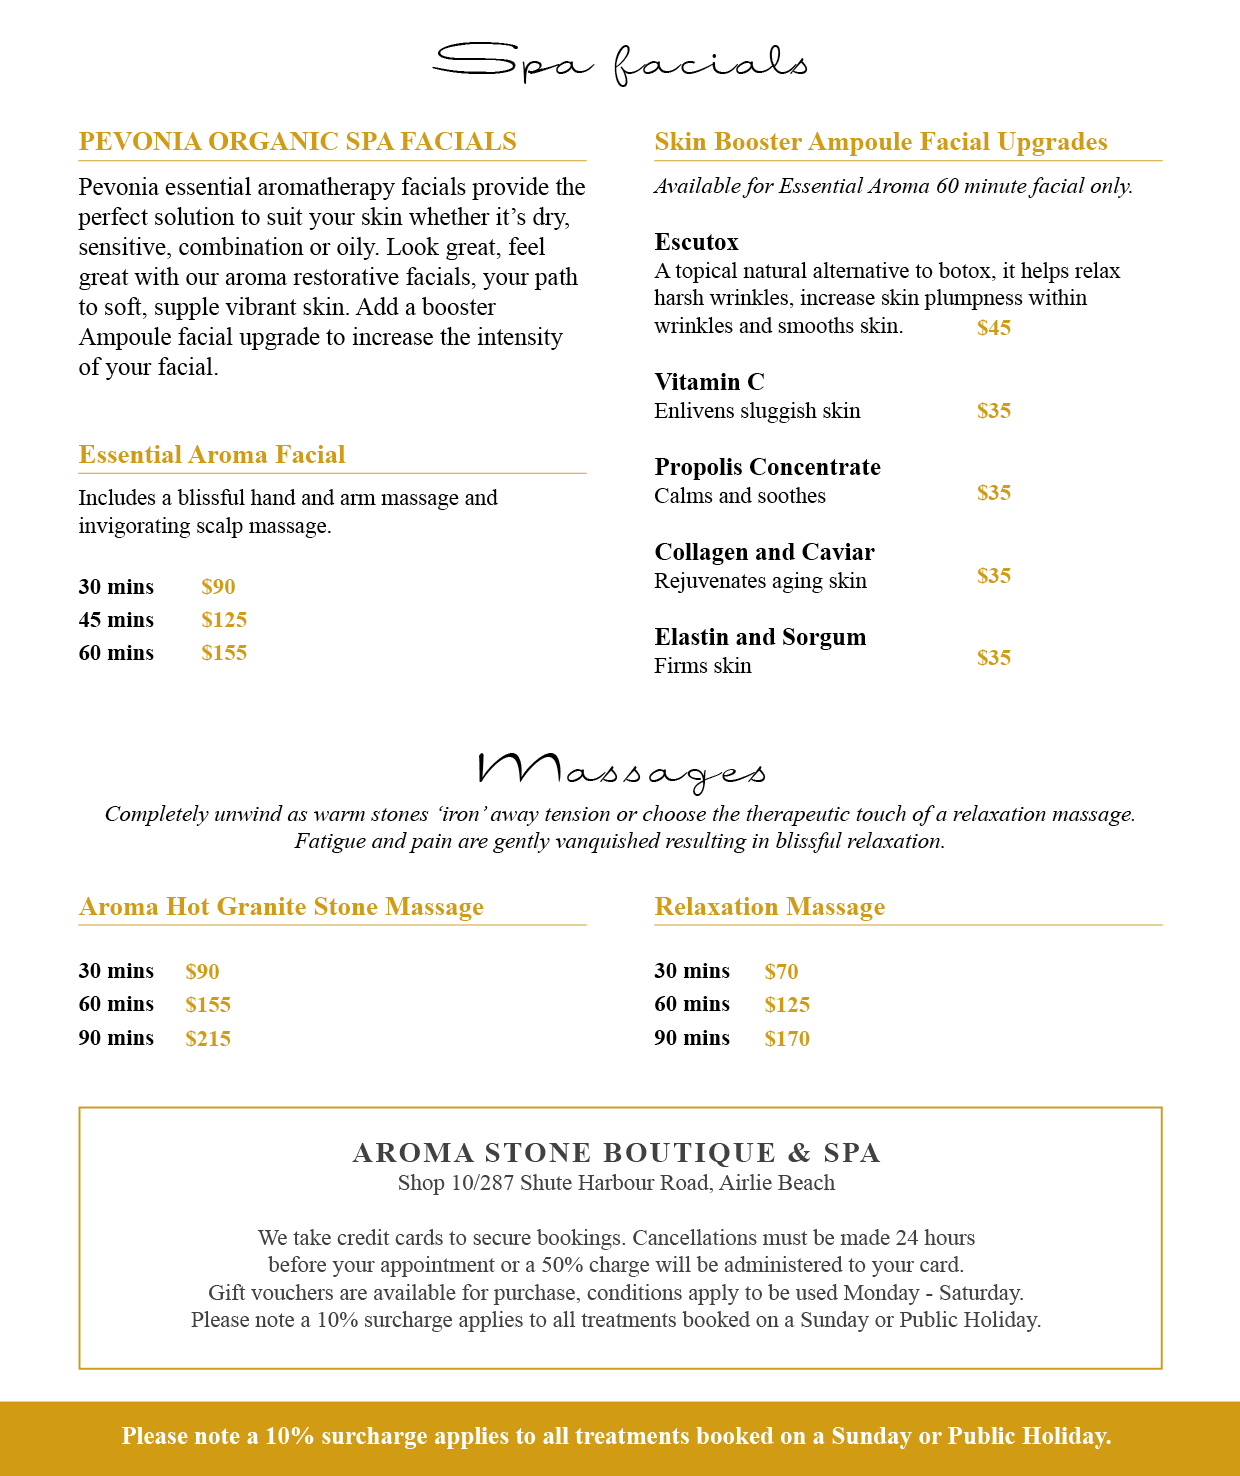 Aroma Stone Boutique and Spa Whitsundays Day Spa Menu